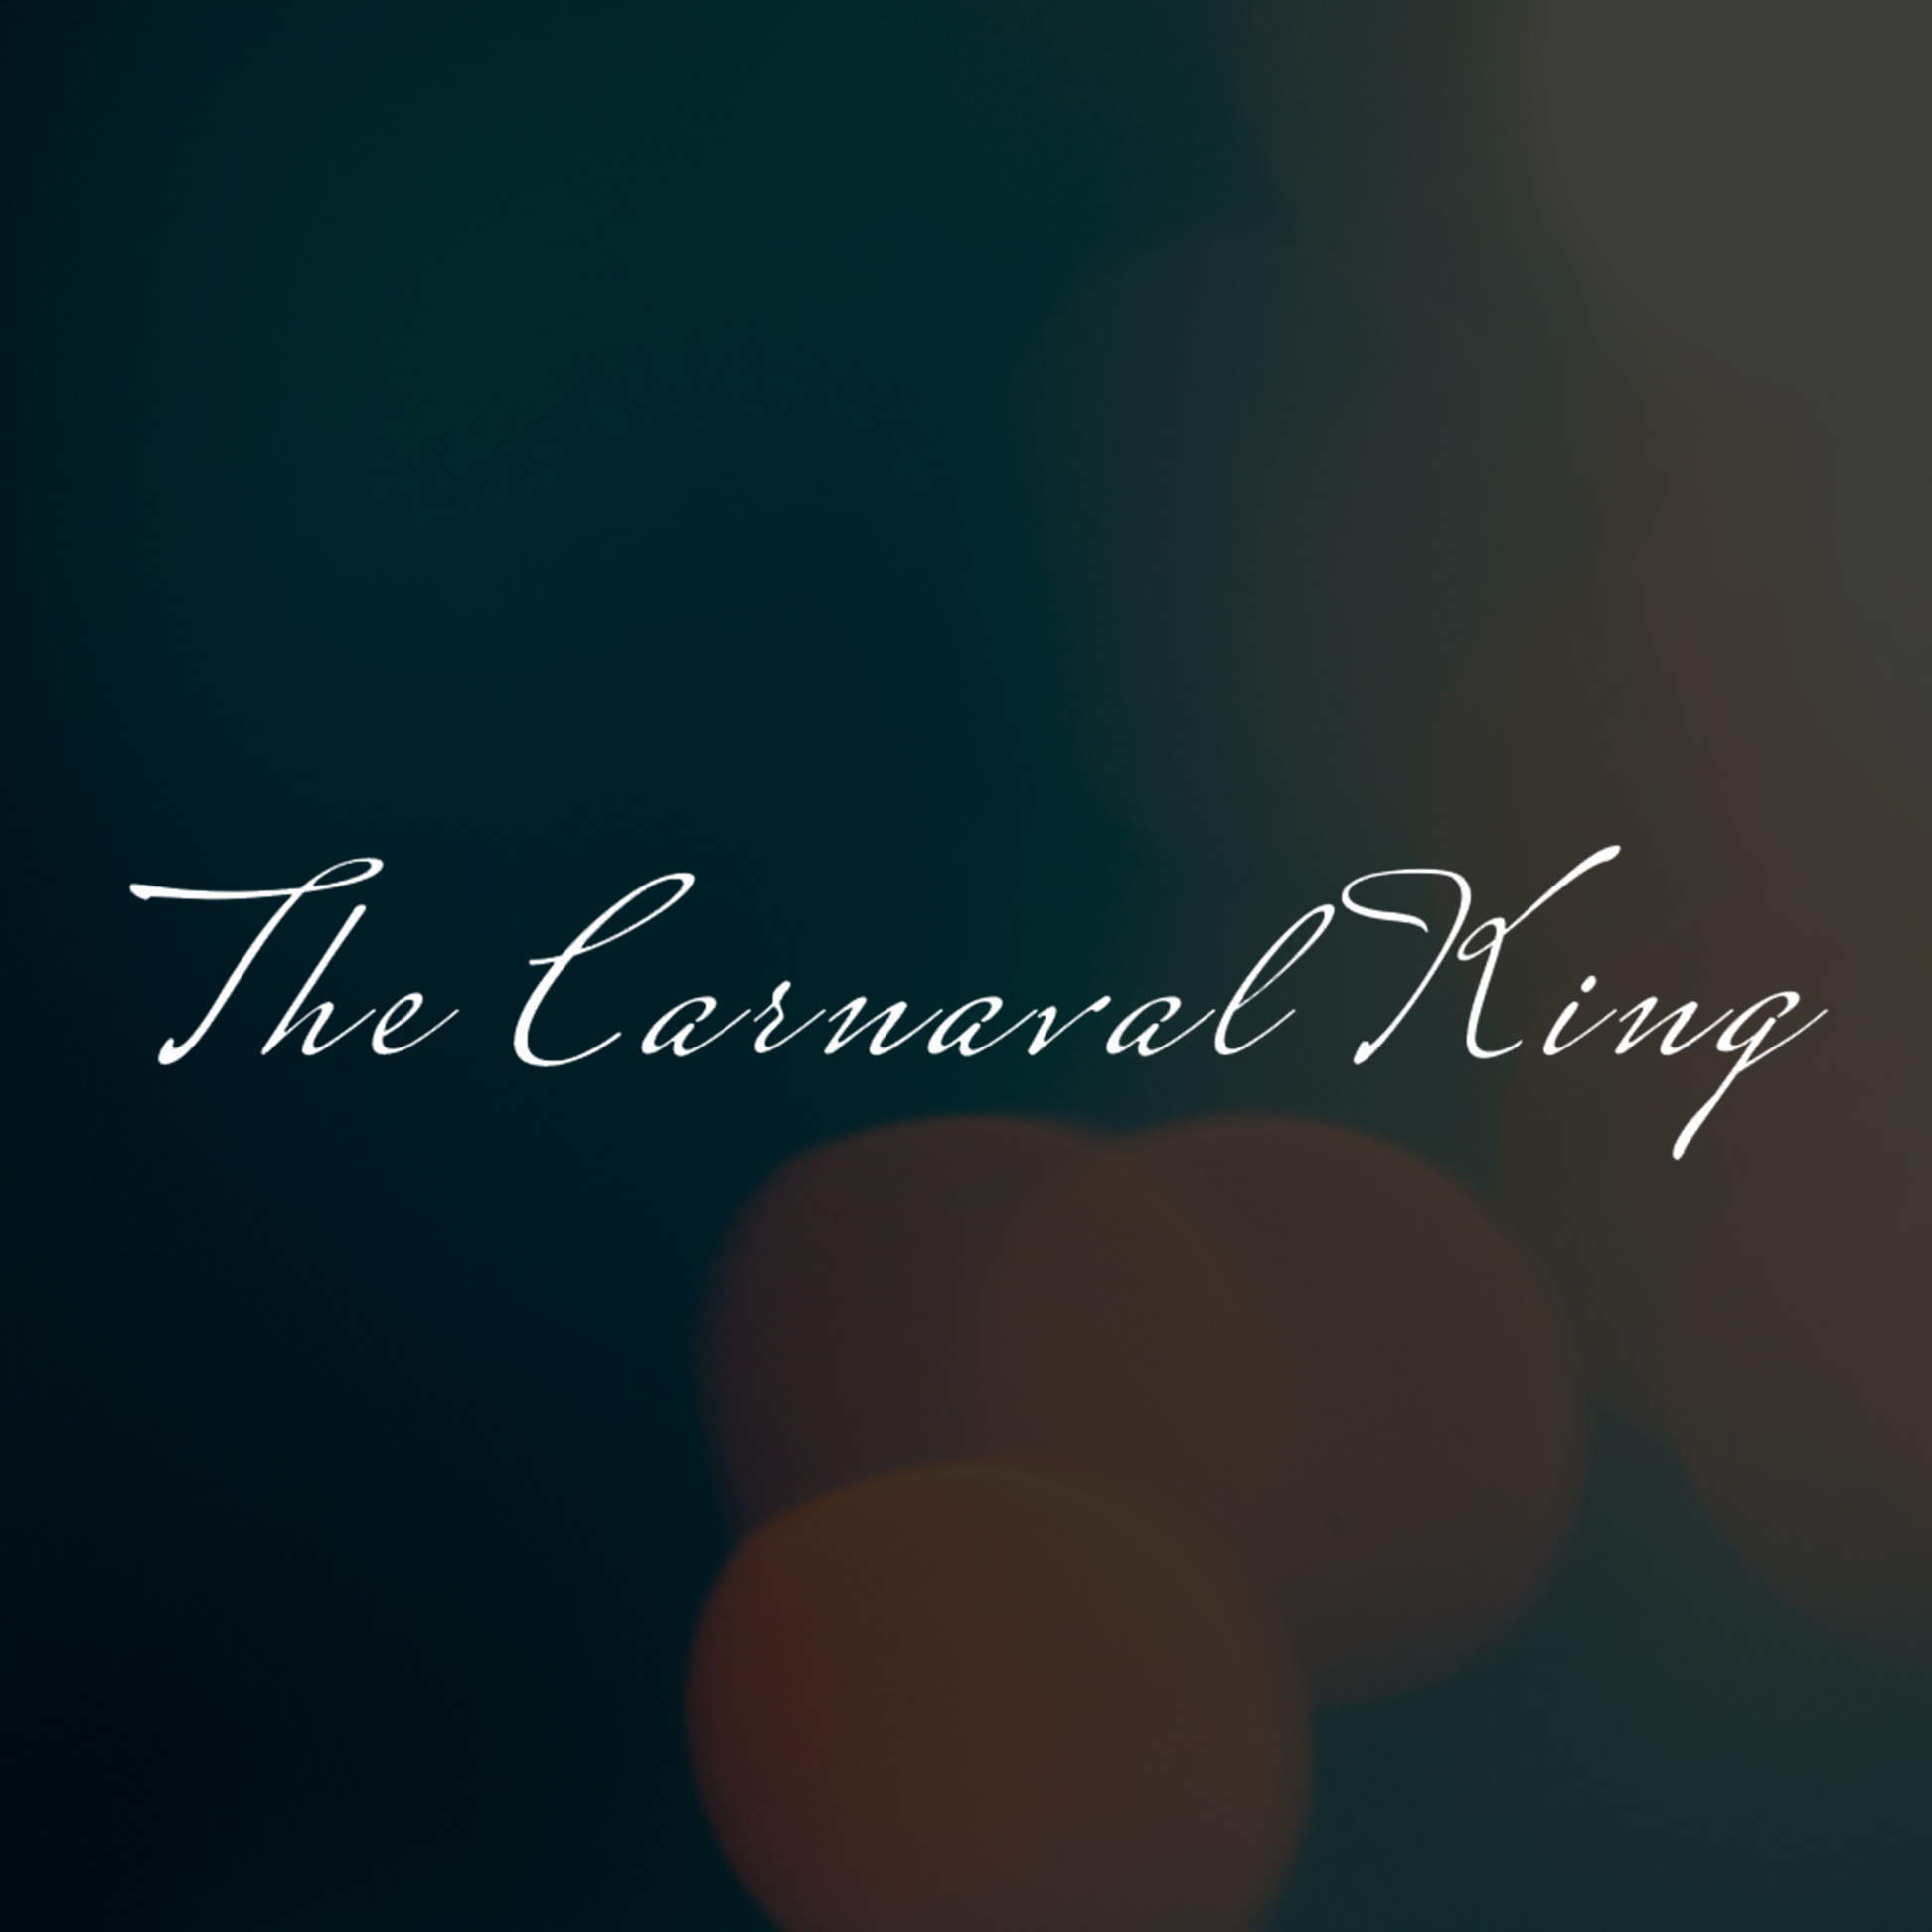 The Carnaval King